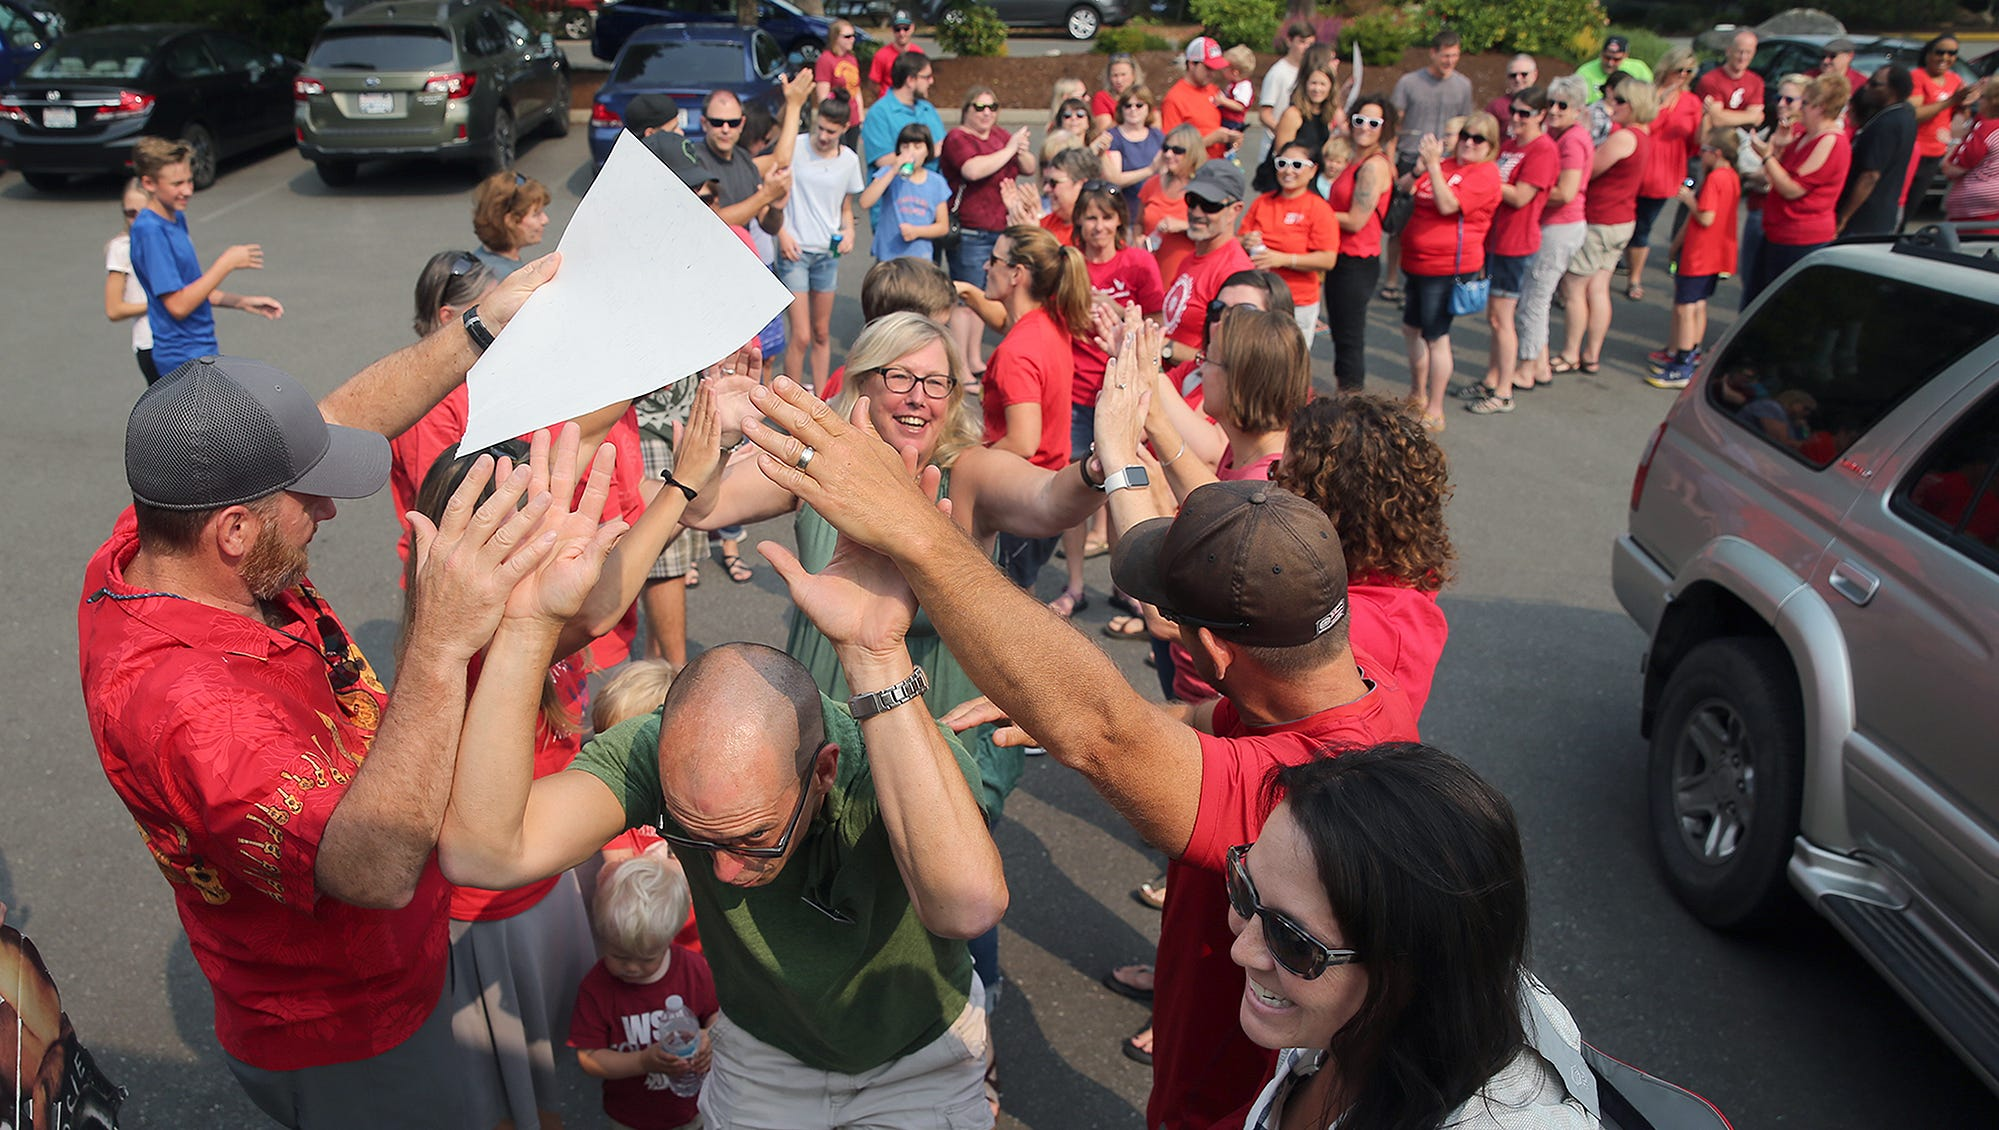 North Kitsap High School teachers Mike McCorkle, and Gayl Teneyck go through a gauntlet as they head to bargain at the WEA headquarters in Poulsbo on Monday August, 13, 2018. Teachers in CKSD and NKSD rally as districts negotiate salary increases resulting from the McCleary decision. Bainbridge, with a 21 percent increase, got one of the highest salary bumps in the state. South Kitsap has reached a tentative agreement and negotiations are wrapping up in CK and NK. Bremerton will wrap up by the end of the month.